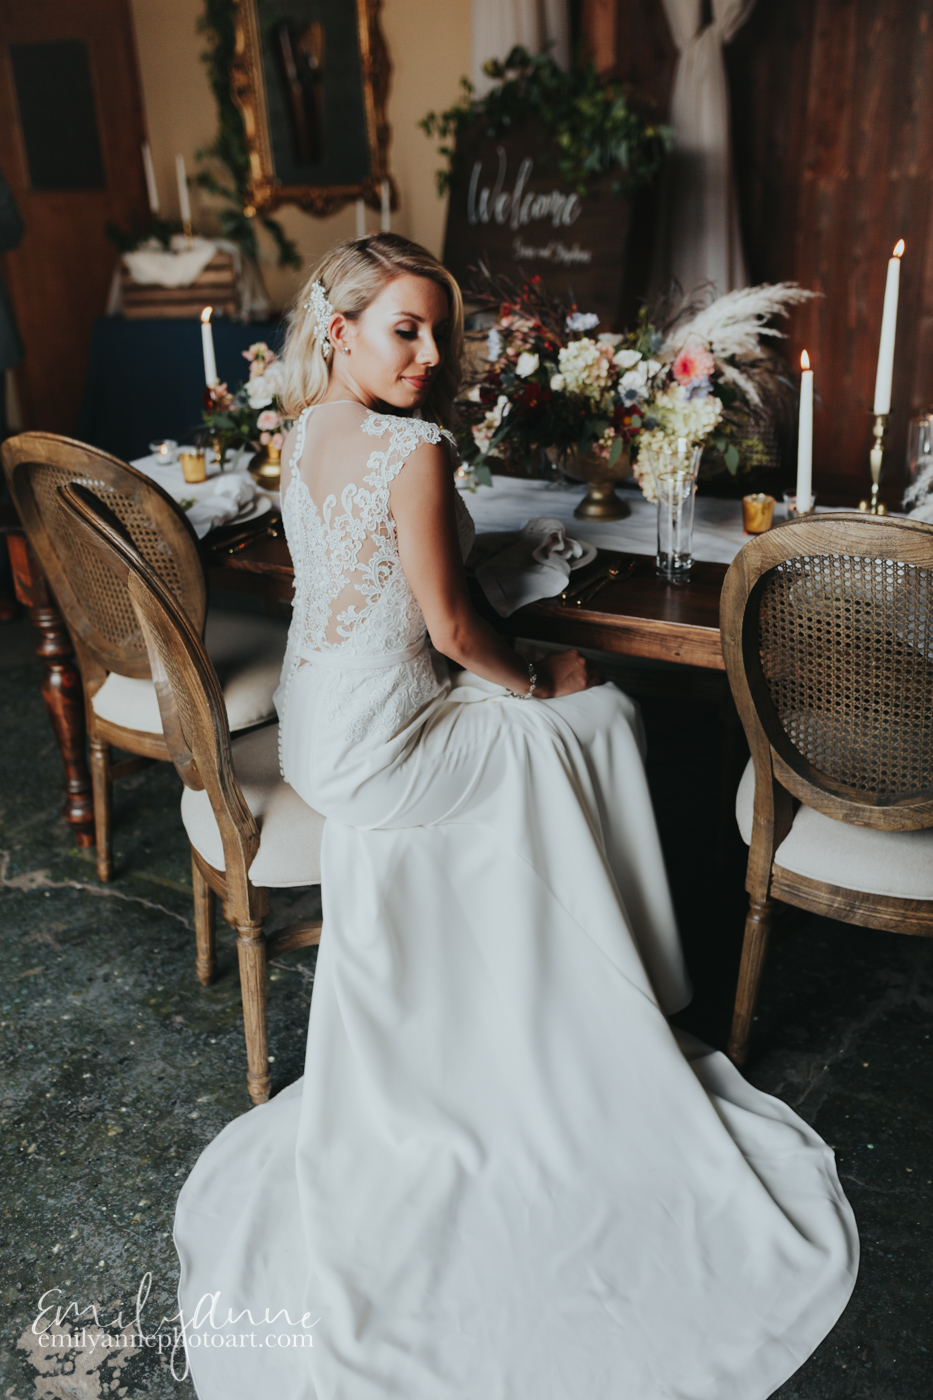 best bridal portraits wedding photography most beautiful bride in Nashville at coolest venue in Nashville-Foundry Events- perfect for weddings and parties - by best wedding photographer Emily Anne